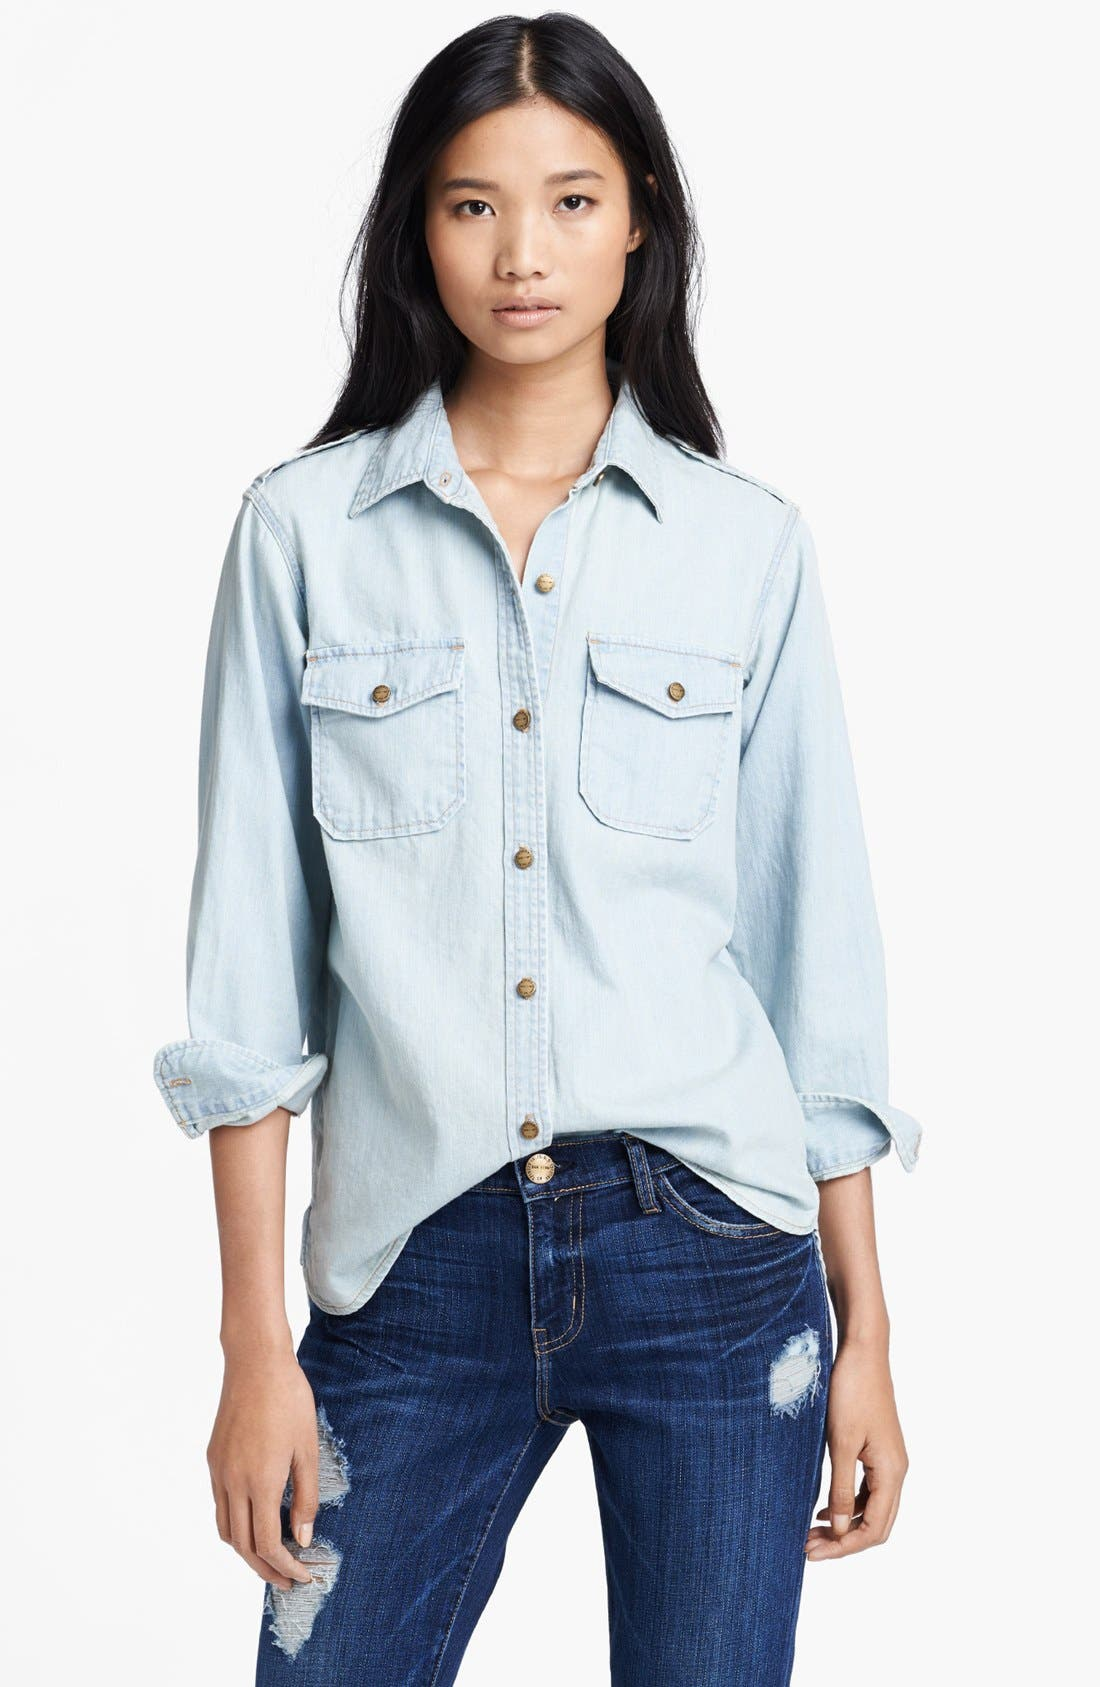 Alternate Image 1 Selected - Current/Elliott 'The Perfect' Button Front Denim Shirt